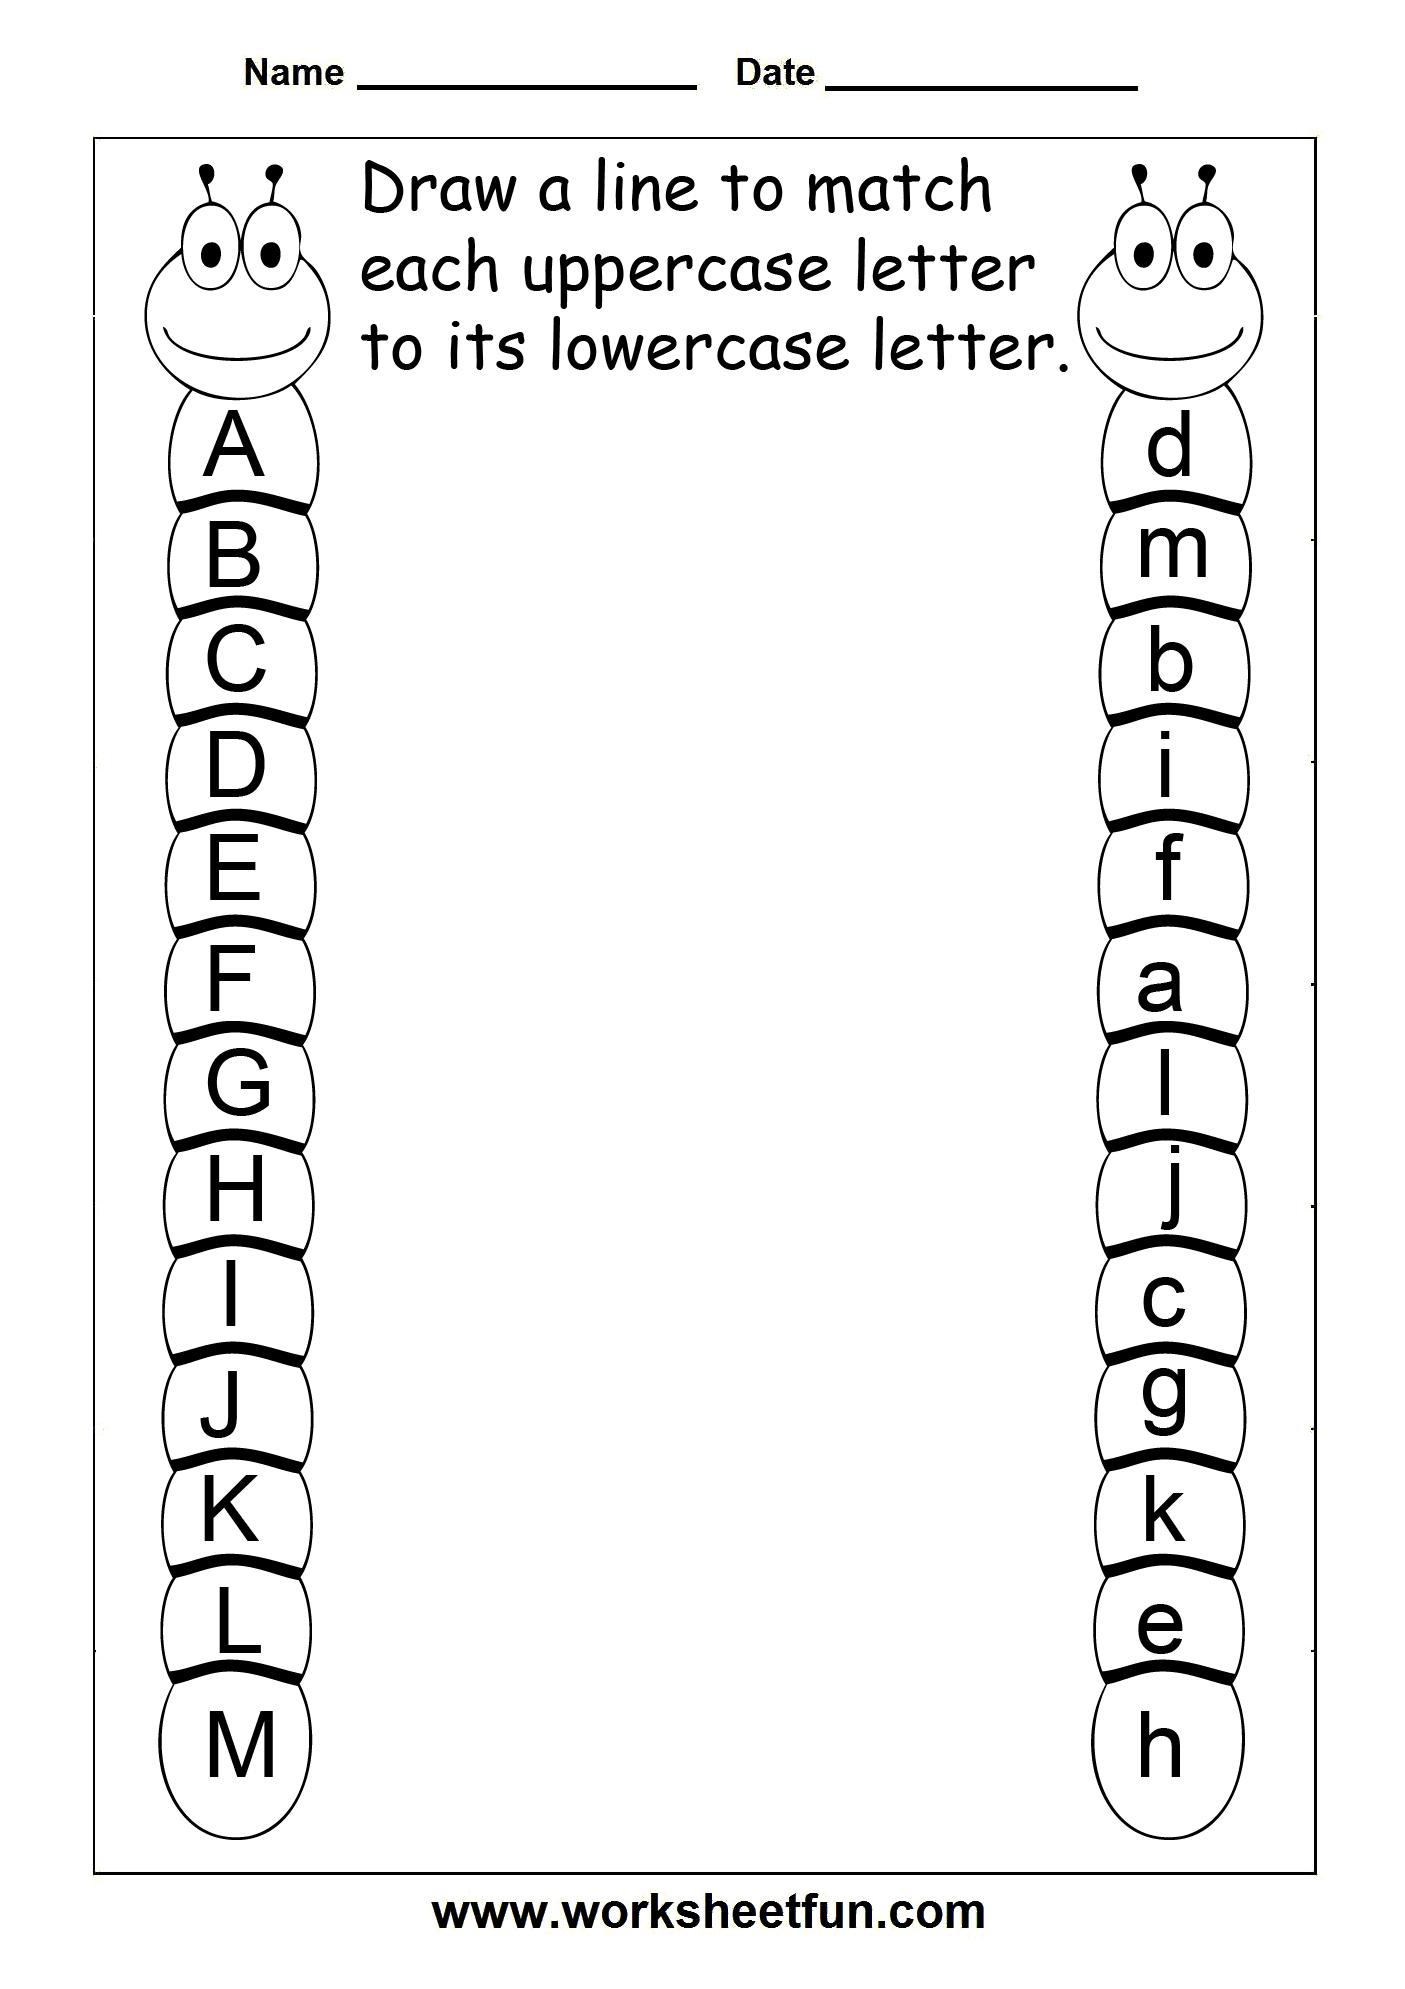 Weirdmailus  Unique  Images About Work Worksheet On Pinterest  Coins Hidden  With Excellent  Images About Work Worksheet On Pinterest  Coins Hidden Pictures And Thanksgiving With Delightful Independent Dependent Clause Worksheet Also Possessive Worksheet In Addition Spelling Worksheets Grade  And Handwriting Without Tears Free Worksheets As Well As Factoring Polynomial Worksheets Additionally Why Questions Worksheets From Pinterestcom With Weirdmailus  Excellent  Images About Work Worksheet On Pinterest  Coins Hidden  With Delightful  Images About Work Worksheet On Pinterest  Coins Hidden Pictures And Thanksgiving And Unique Independent Dependent Clause Worksheet Also Possessive Worksheet In Addition Spelling Worksheets Grade  From Pinterestcom